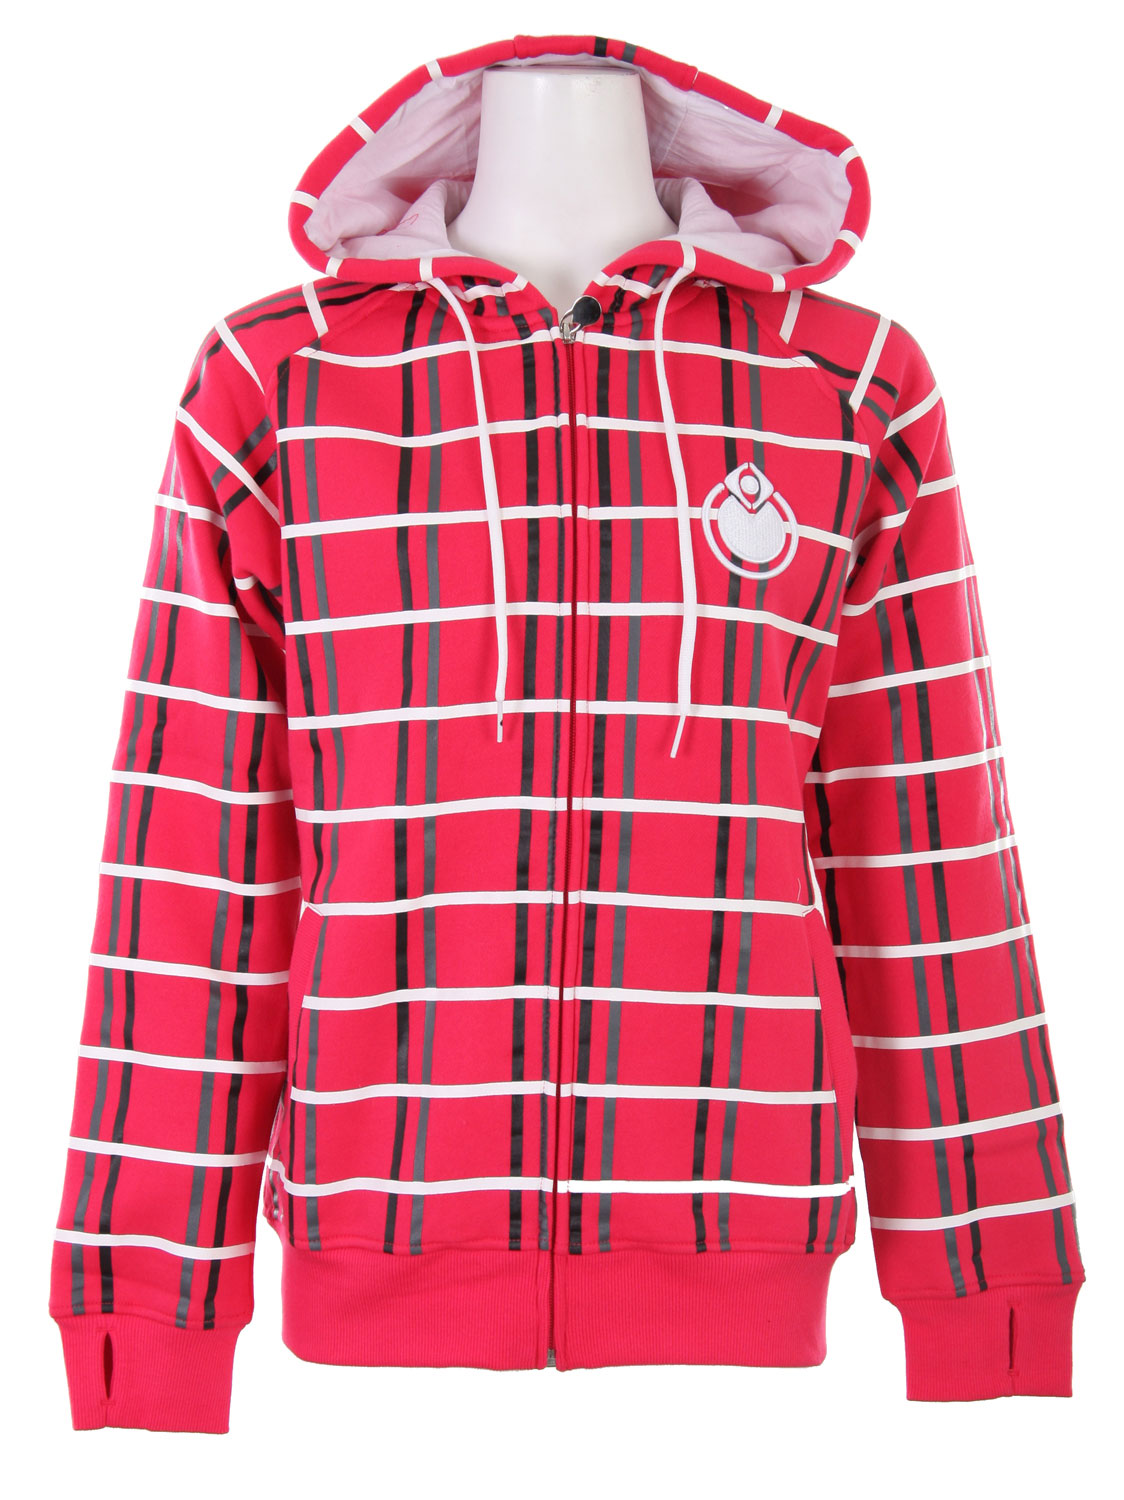 If you are looking for a statement piece, this is it. With its bold design and contrasting colors, the Nomis OG Plaid Hoodie will get you noticed. Made from 80% cotton and 20% polyester, this hoodie will keep you warm and comfortable all day long. It full zip design, lined hood, and kangaroo pockets make it functional in addition to eye catching. The Nomis OG Plaid Hoodie is a funky addition to any woman's wardrobe.Key Features of the Nomis OG Plaid Hoodie Rah Red: 80% Cotton/20% Poly - 270 gm - $22.68